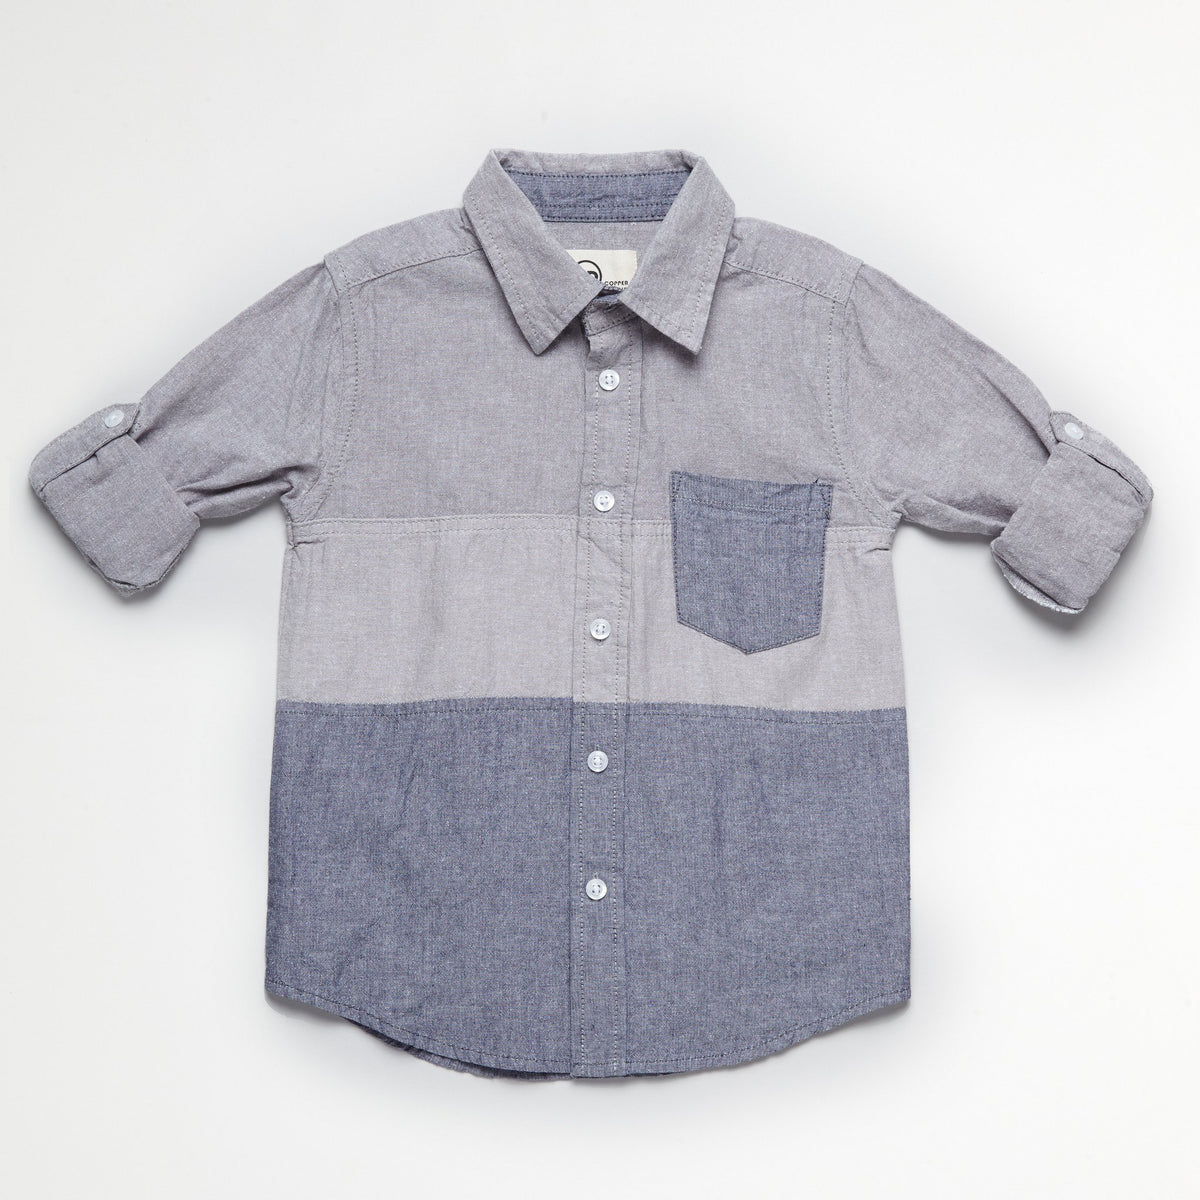 Striped Gray Chambray Work Shirt